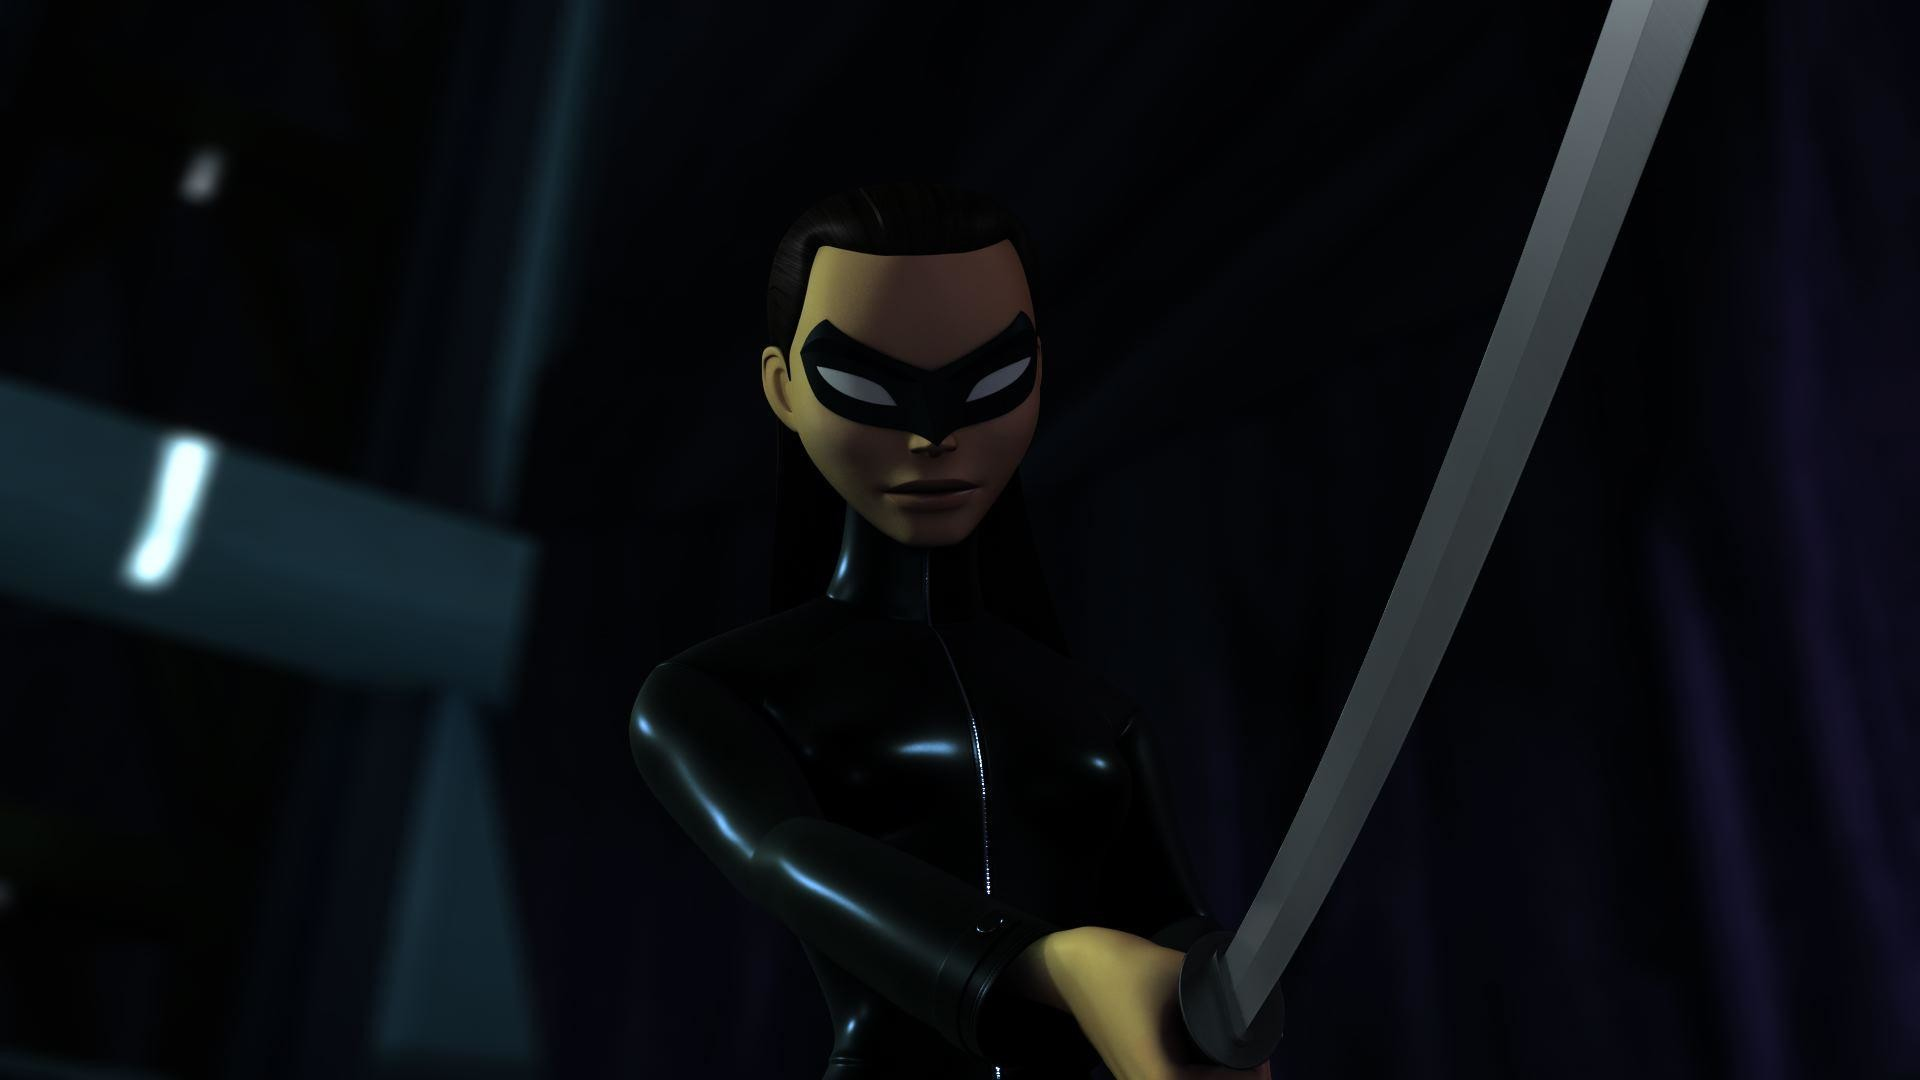 Promo Clips And Images For BEWARE THE BATMAN & TEEN TITANS GO! [